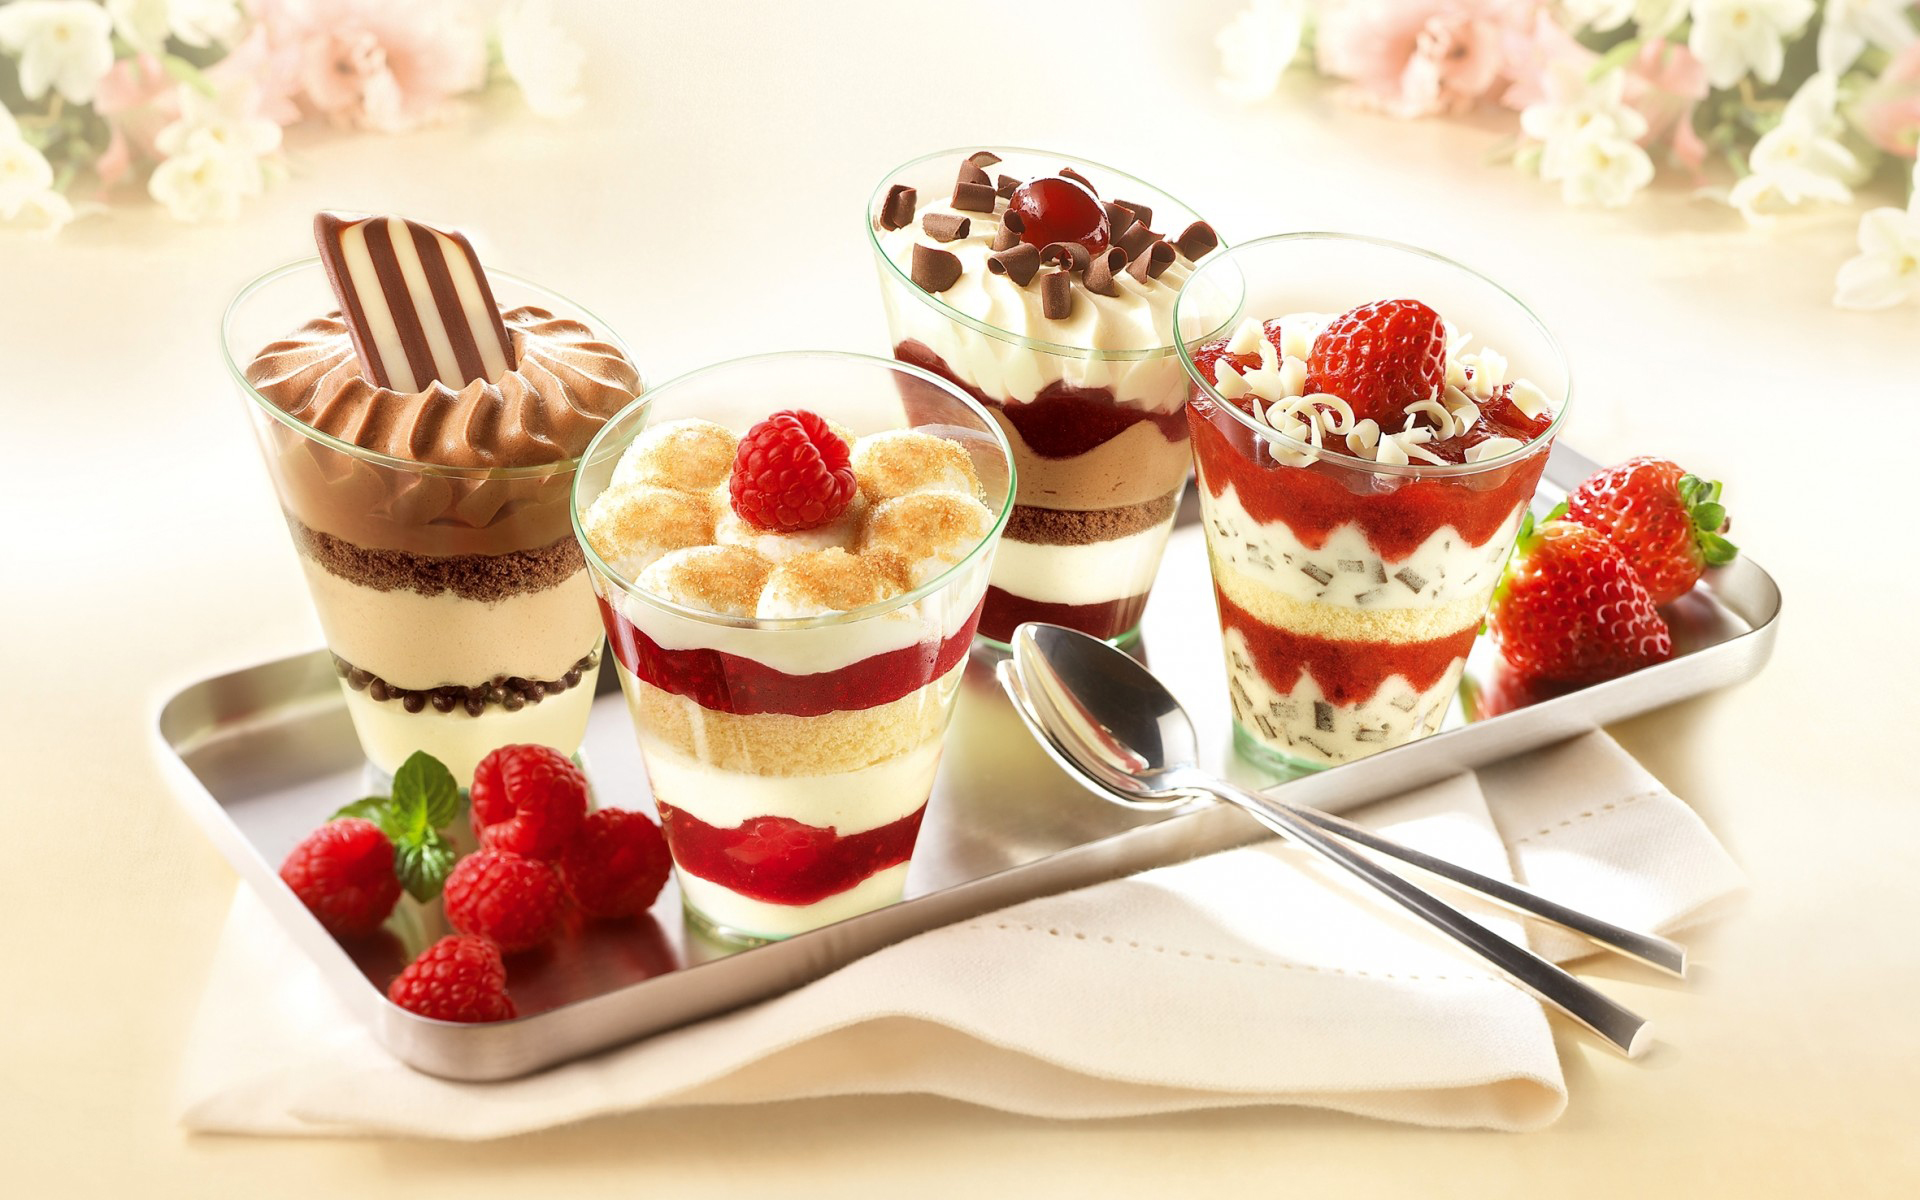 ... icecream-hd-wallpapers-8 ...